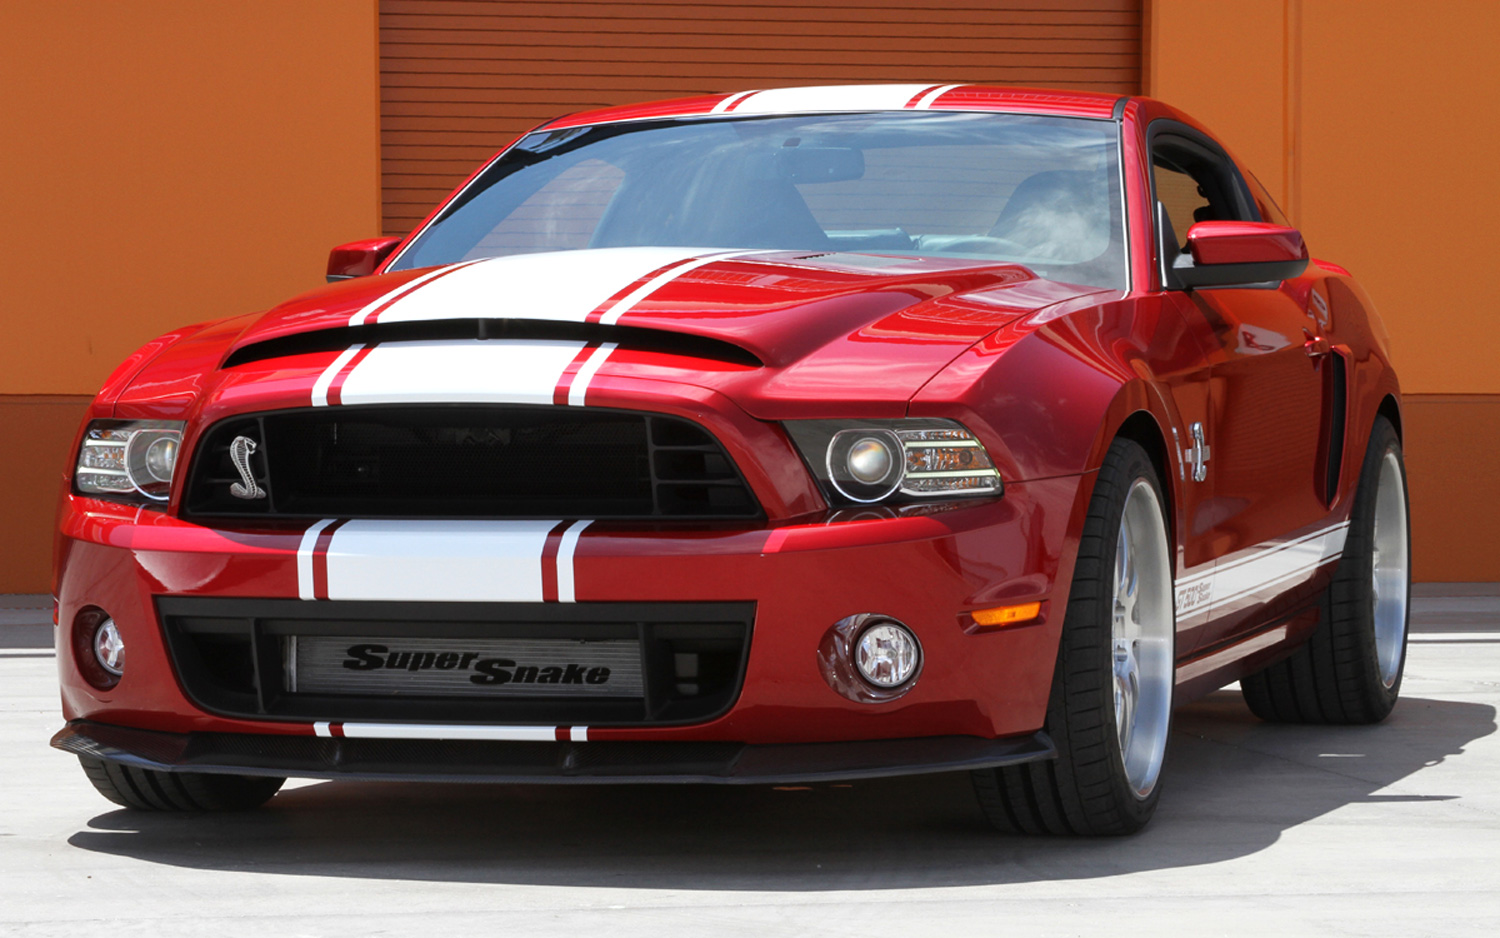 2014 Ford Shelby Gt500 #3